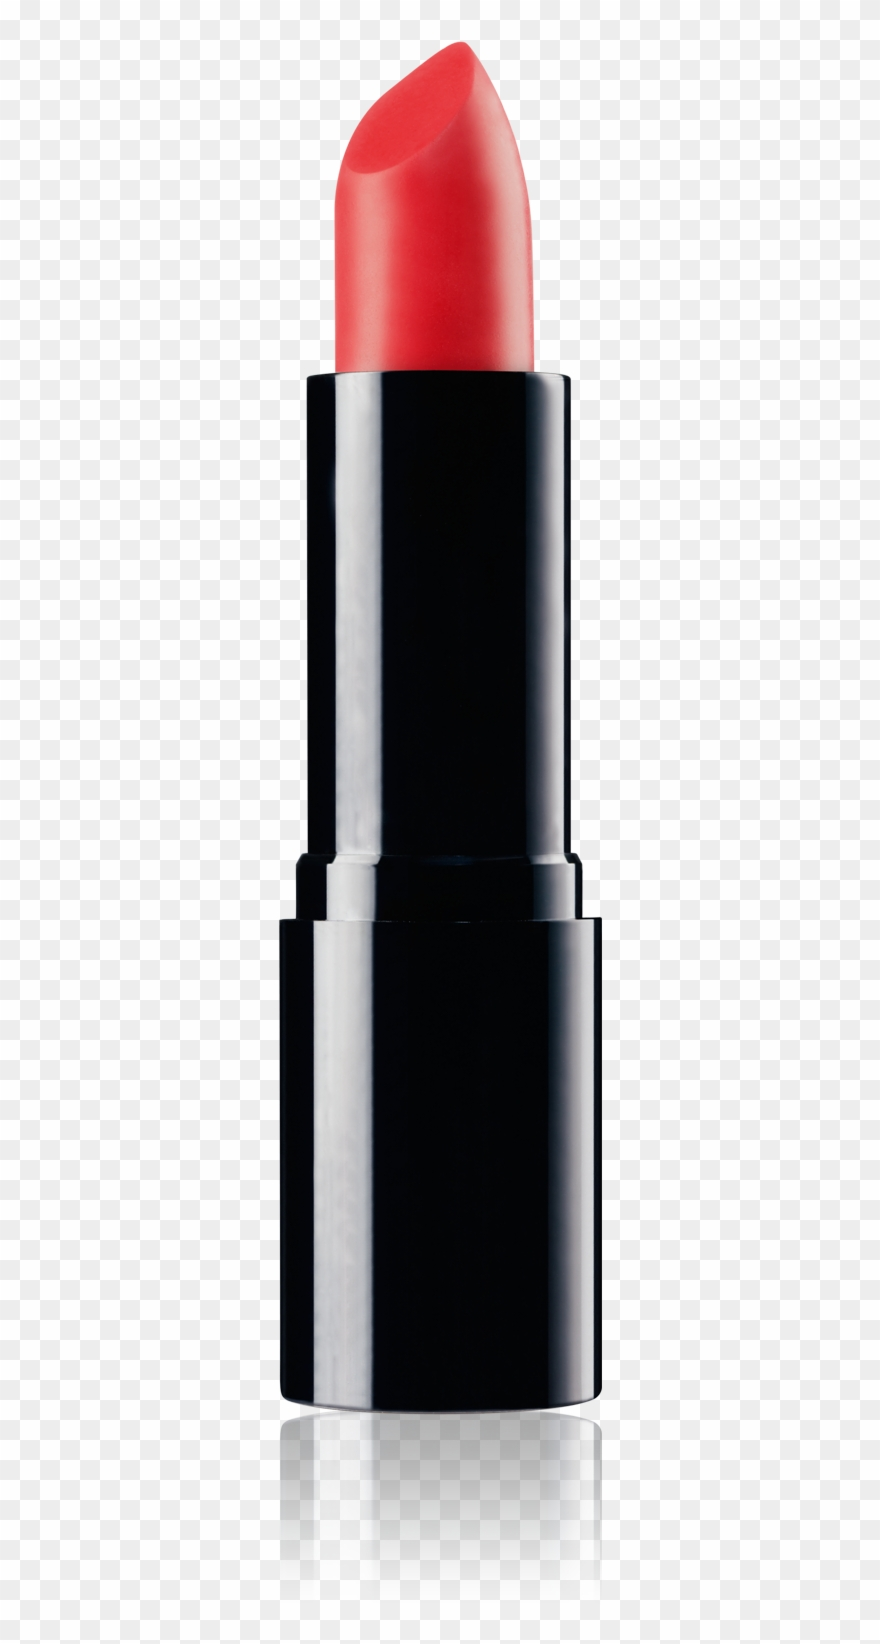 Lipstick clipart clear background. Transparent png